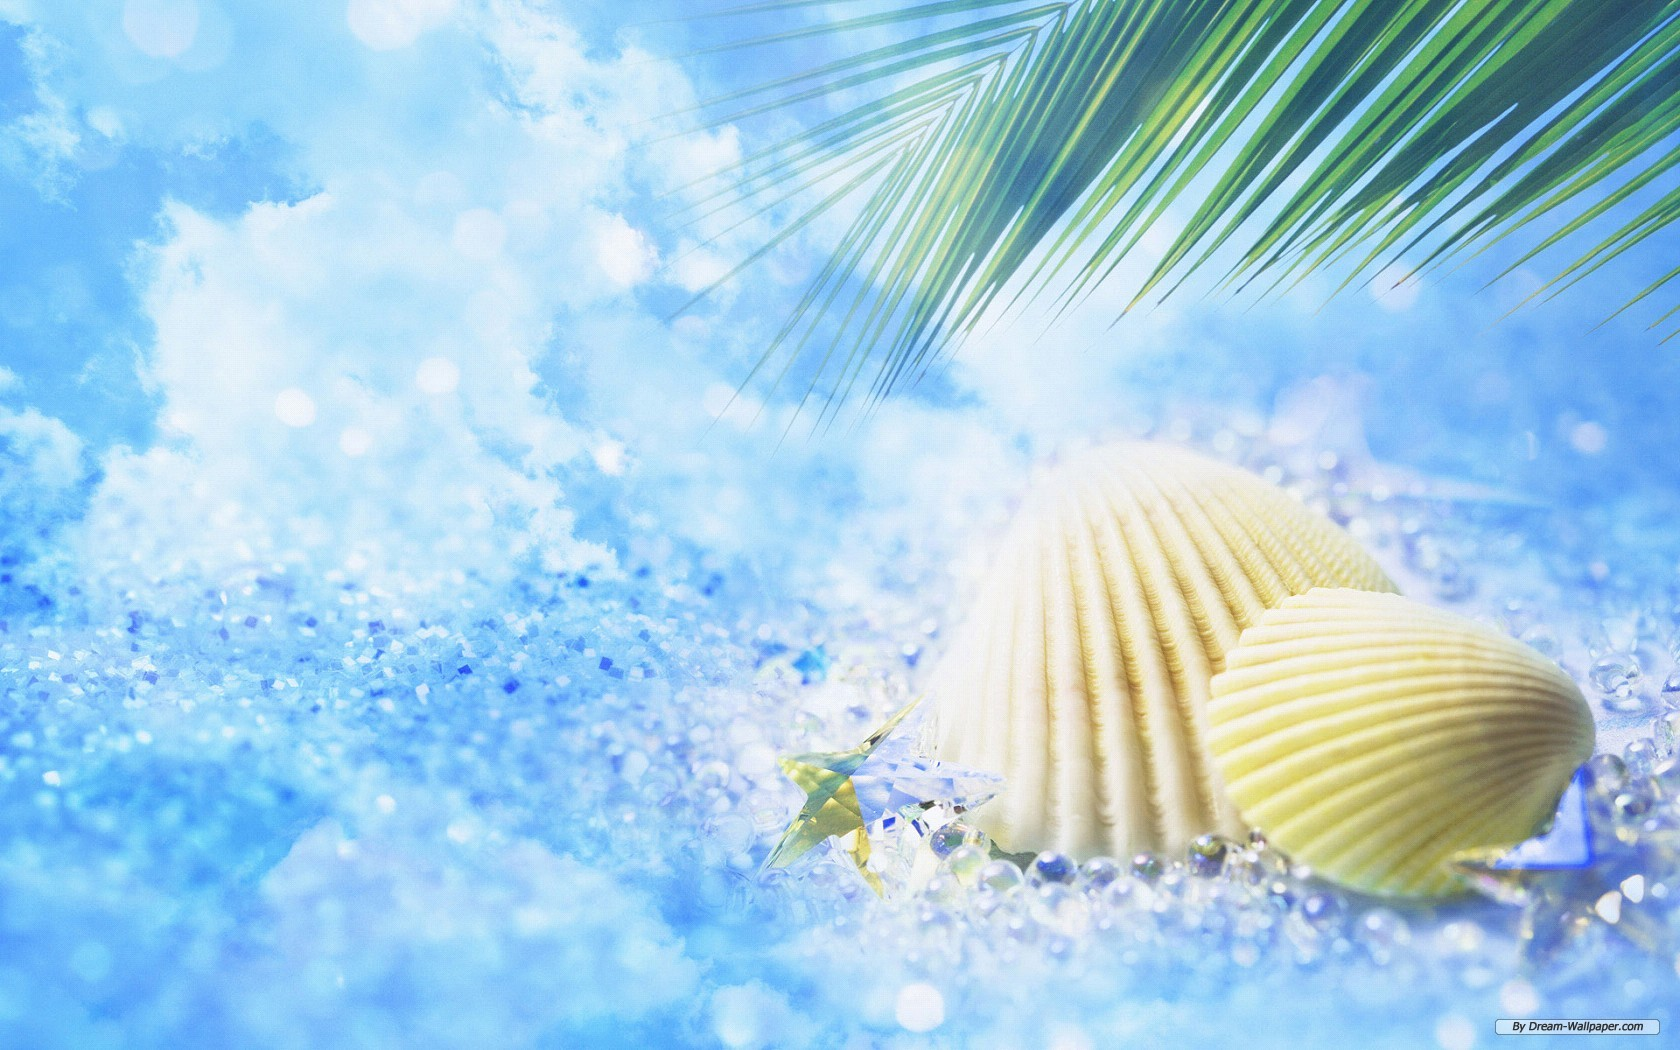 75] Summer Wallpapers For Desktop on WallpaperSafari 1680x1050